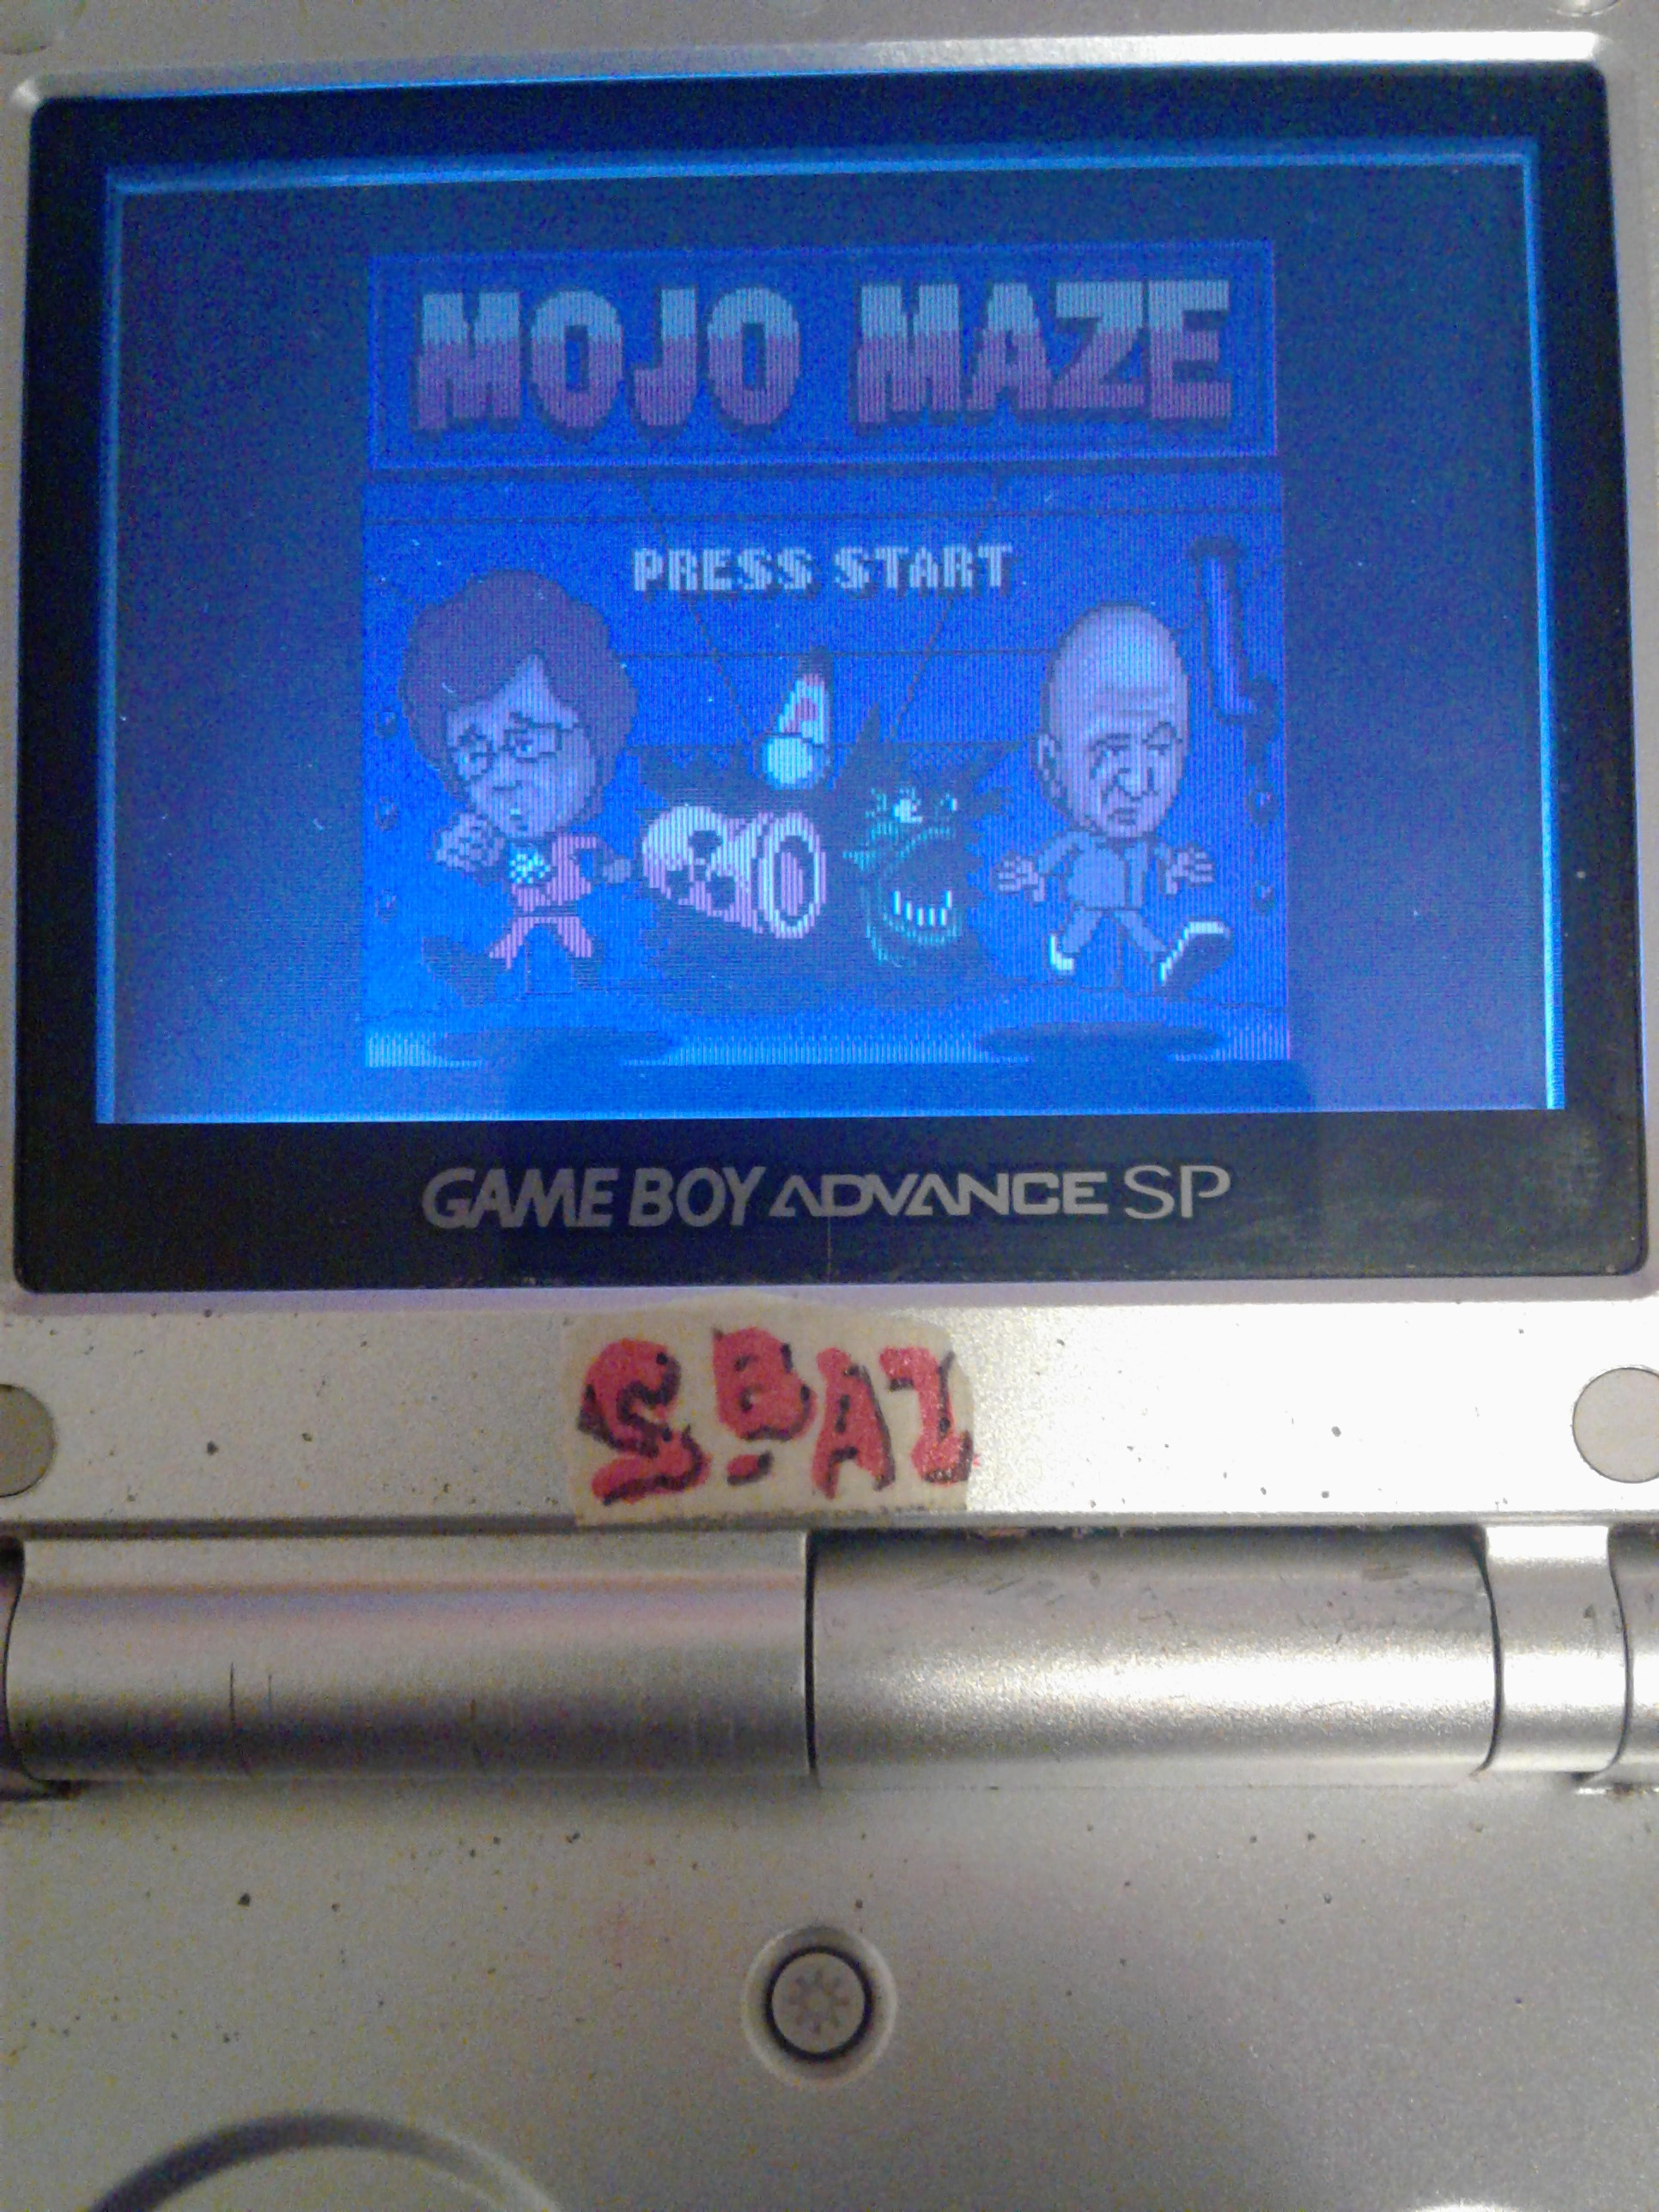 S.BAZ: Austin Powers Oh, Behave!: Mojo Maze [Easy] (Game Boy Color) 2,520 points on 2019-07-25 12:46:13